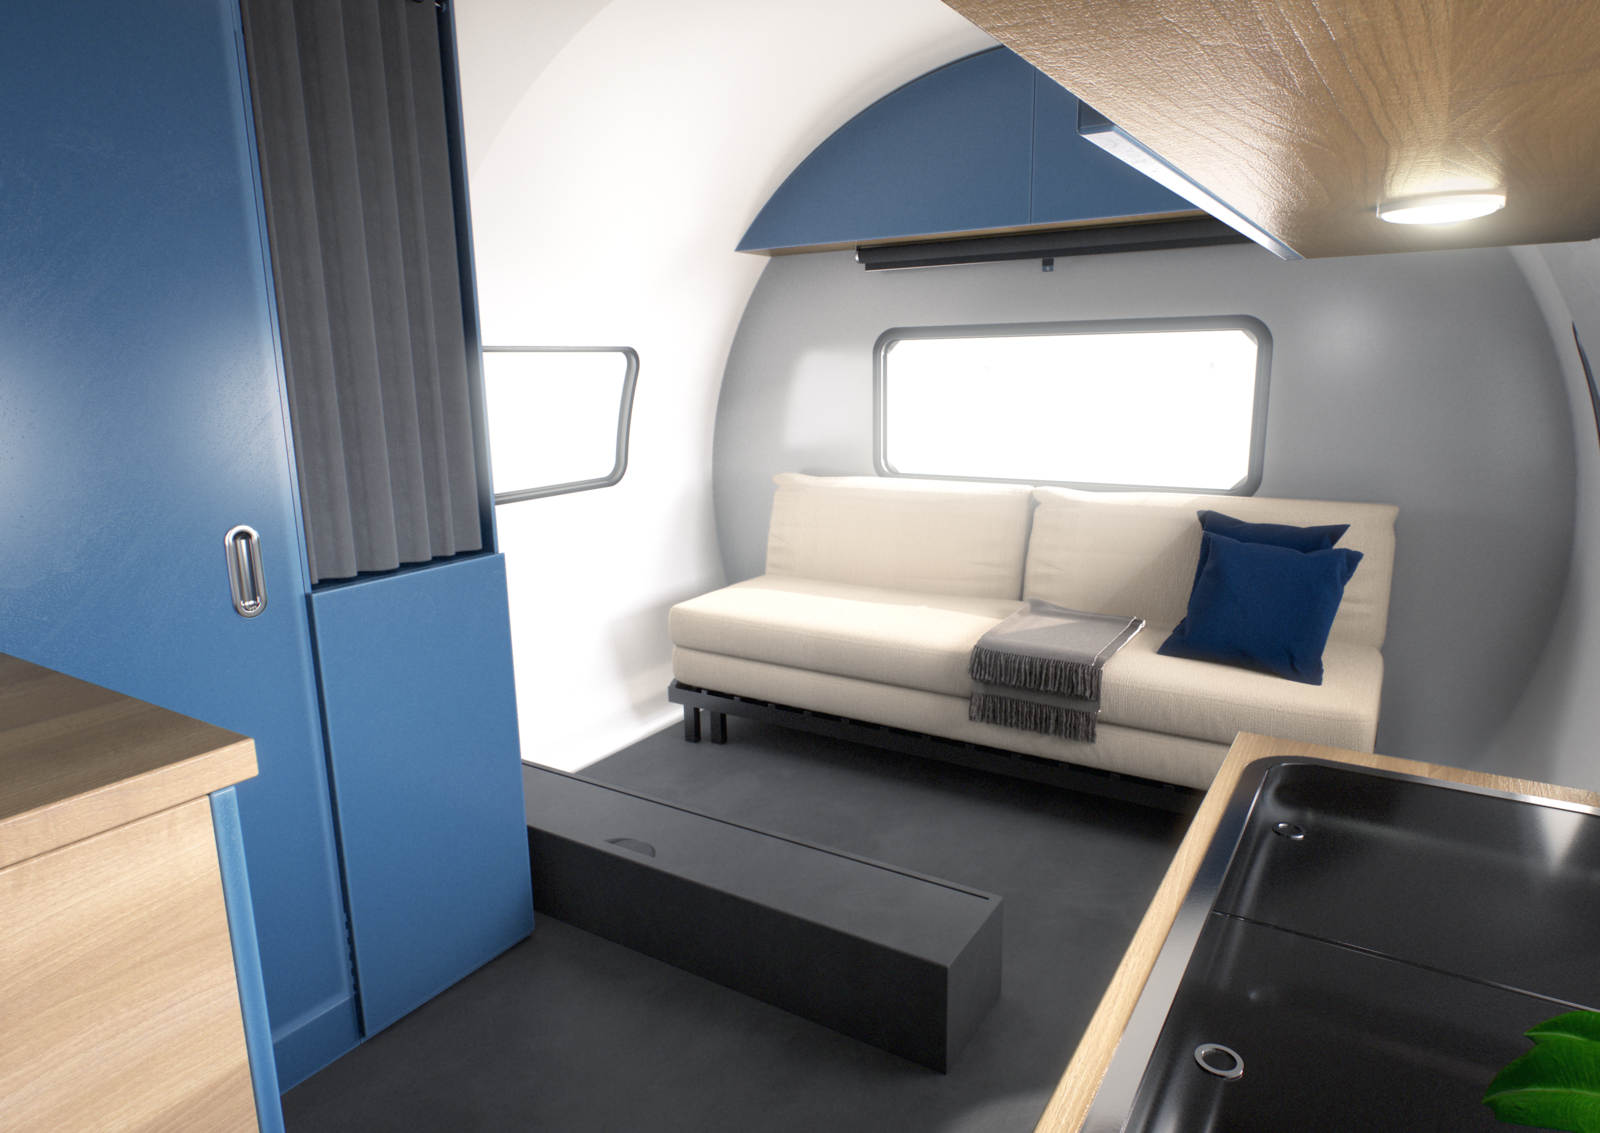 https://images.dwell.com/photos-6301044927817658368/6613485966543761408-large/a-minimal-color-palette-and-clean-lines-gives-the-travel-trailer-interiors-a-sleek-look.png